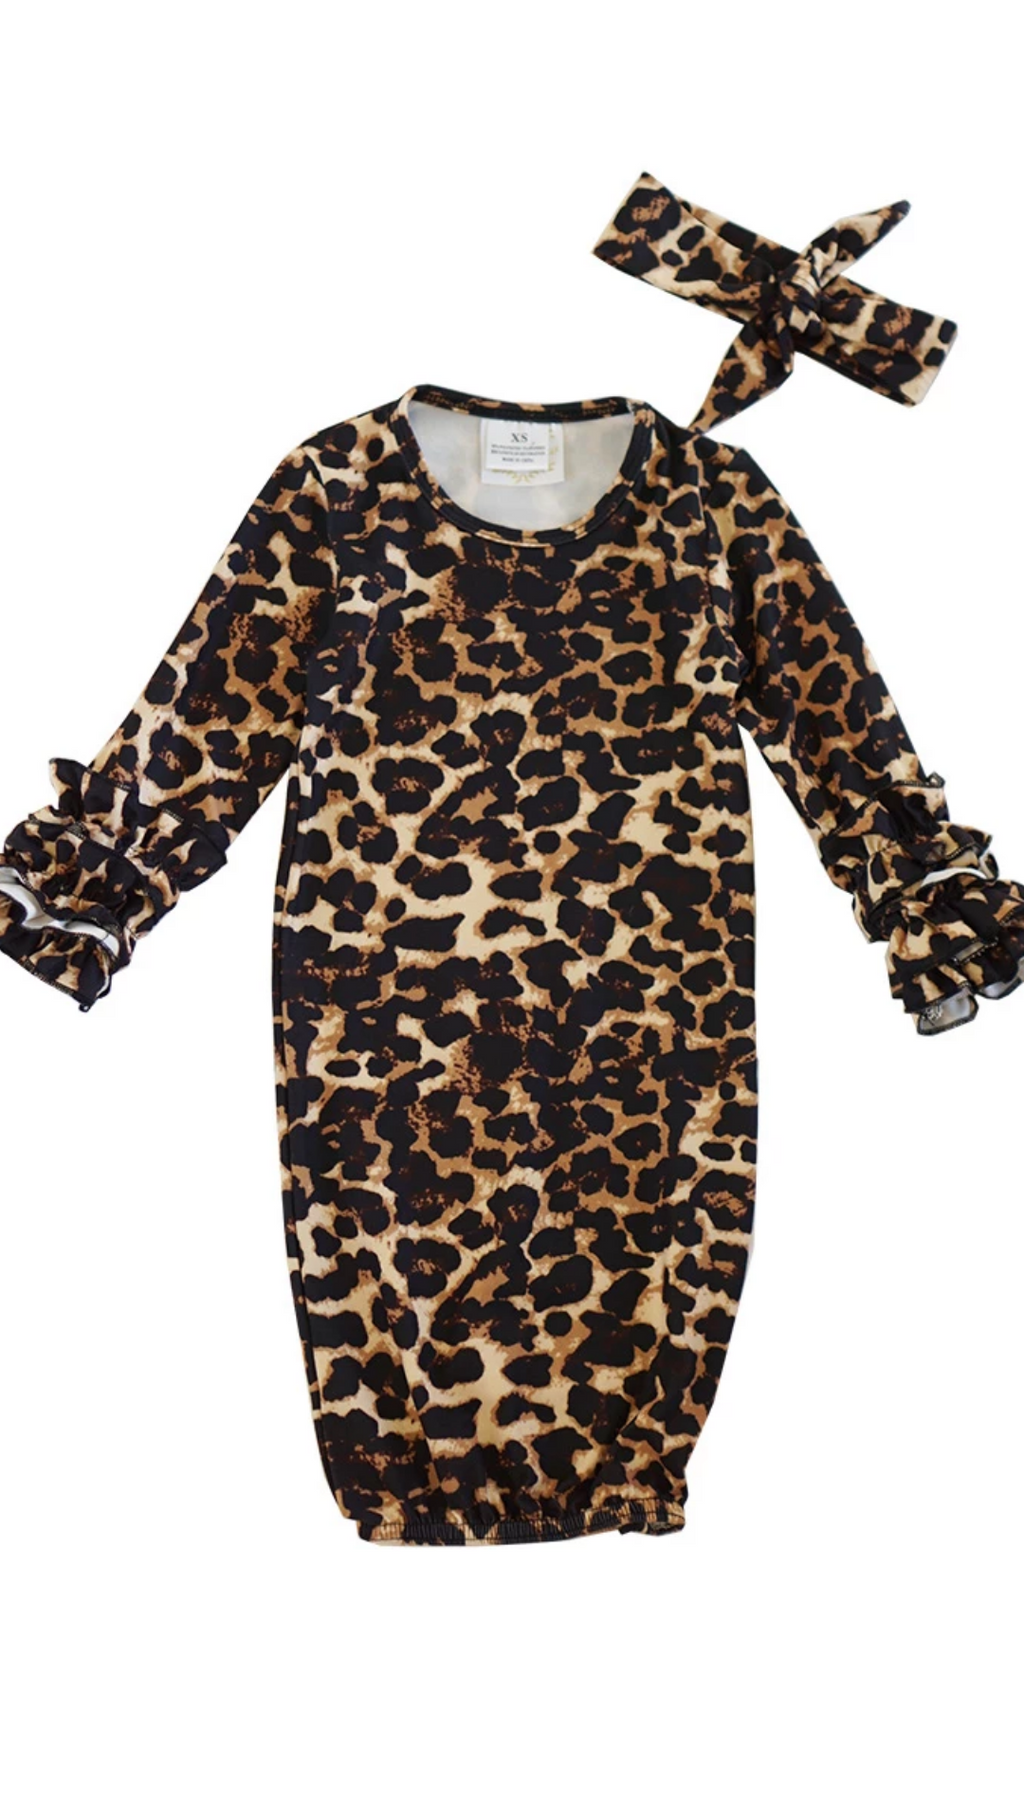 Leopard print baby gown with matching head band